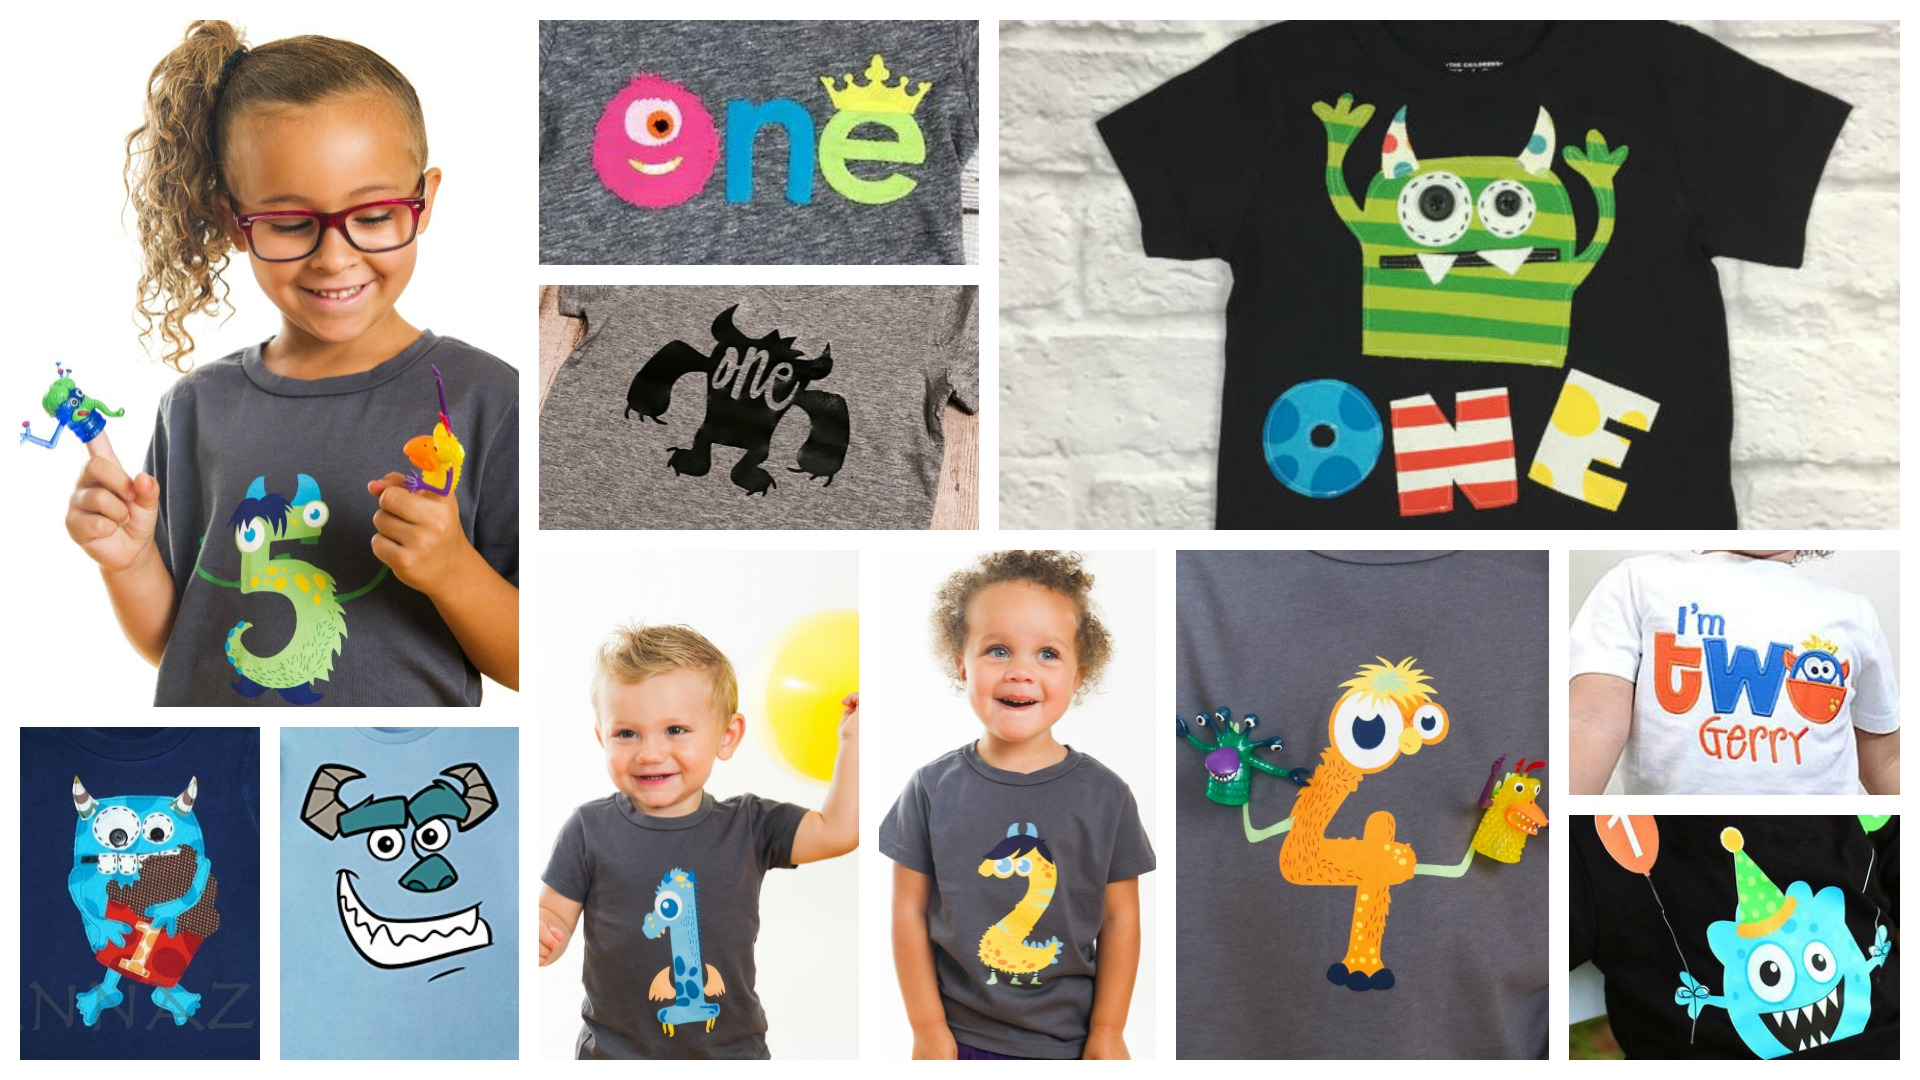 15 Adorable Monster Birthday Shirts For Ages 1-5